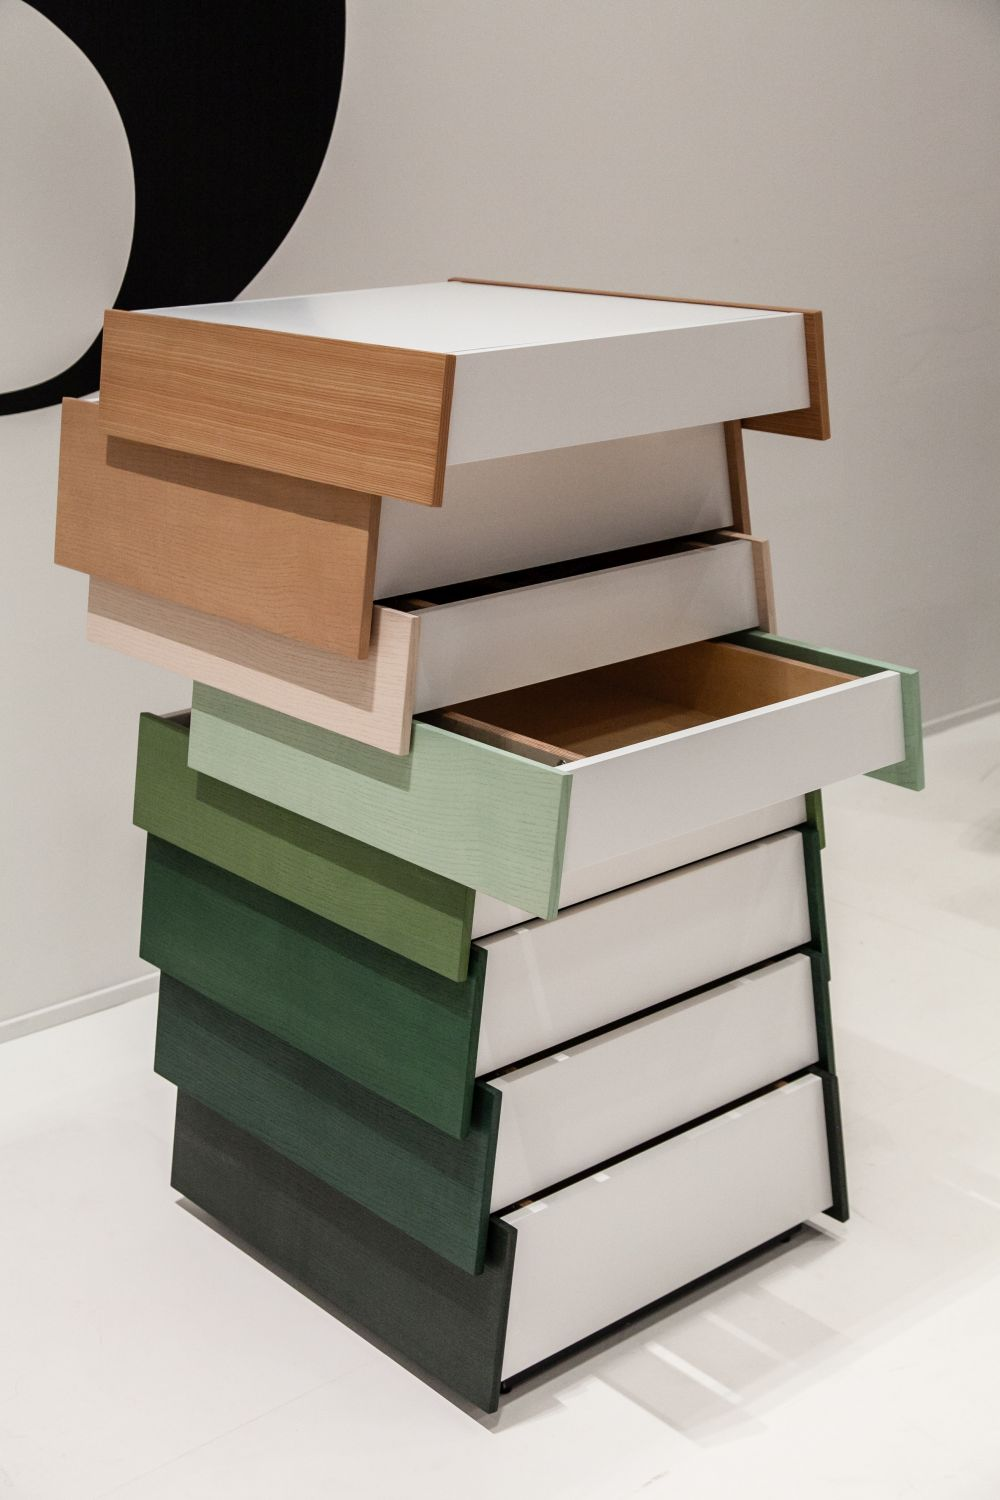 Sculptural dresser with drawers that open both directions